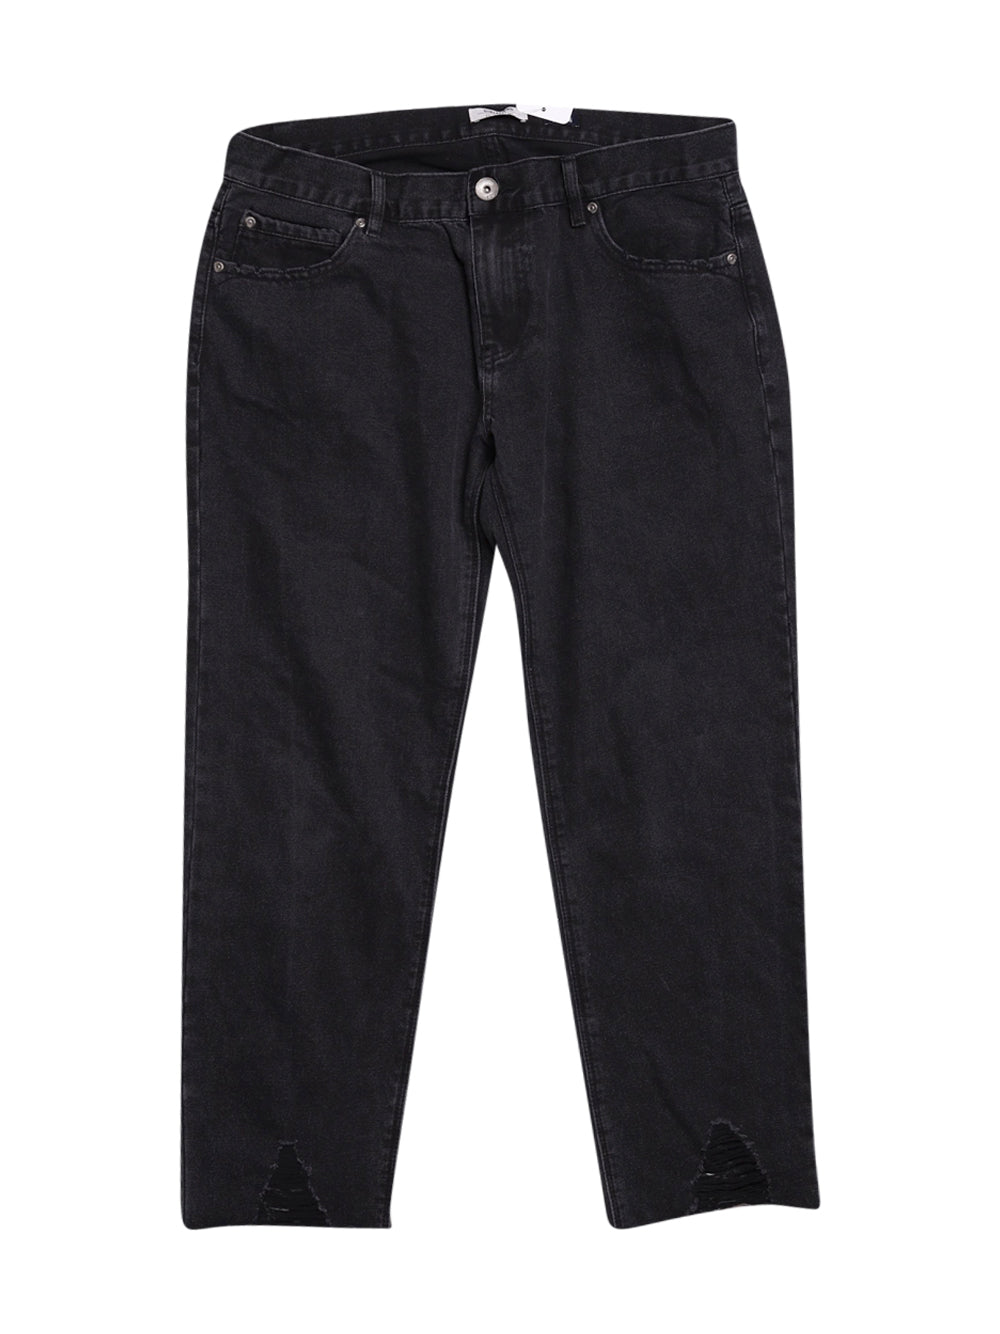 Front photo of Preloved girl friend Black Woman's trousers - size 14/XL